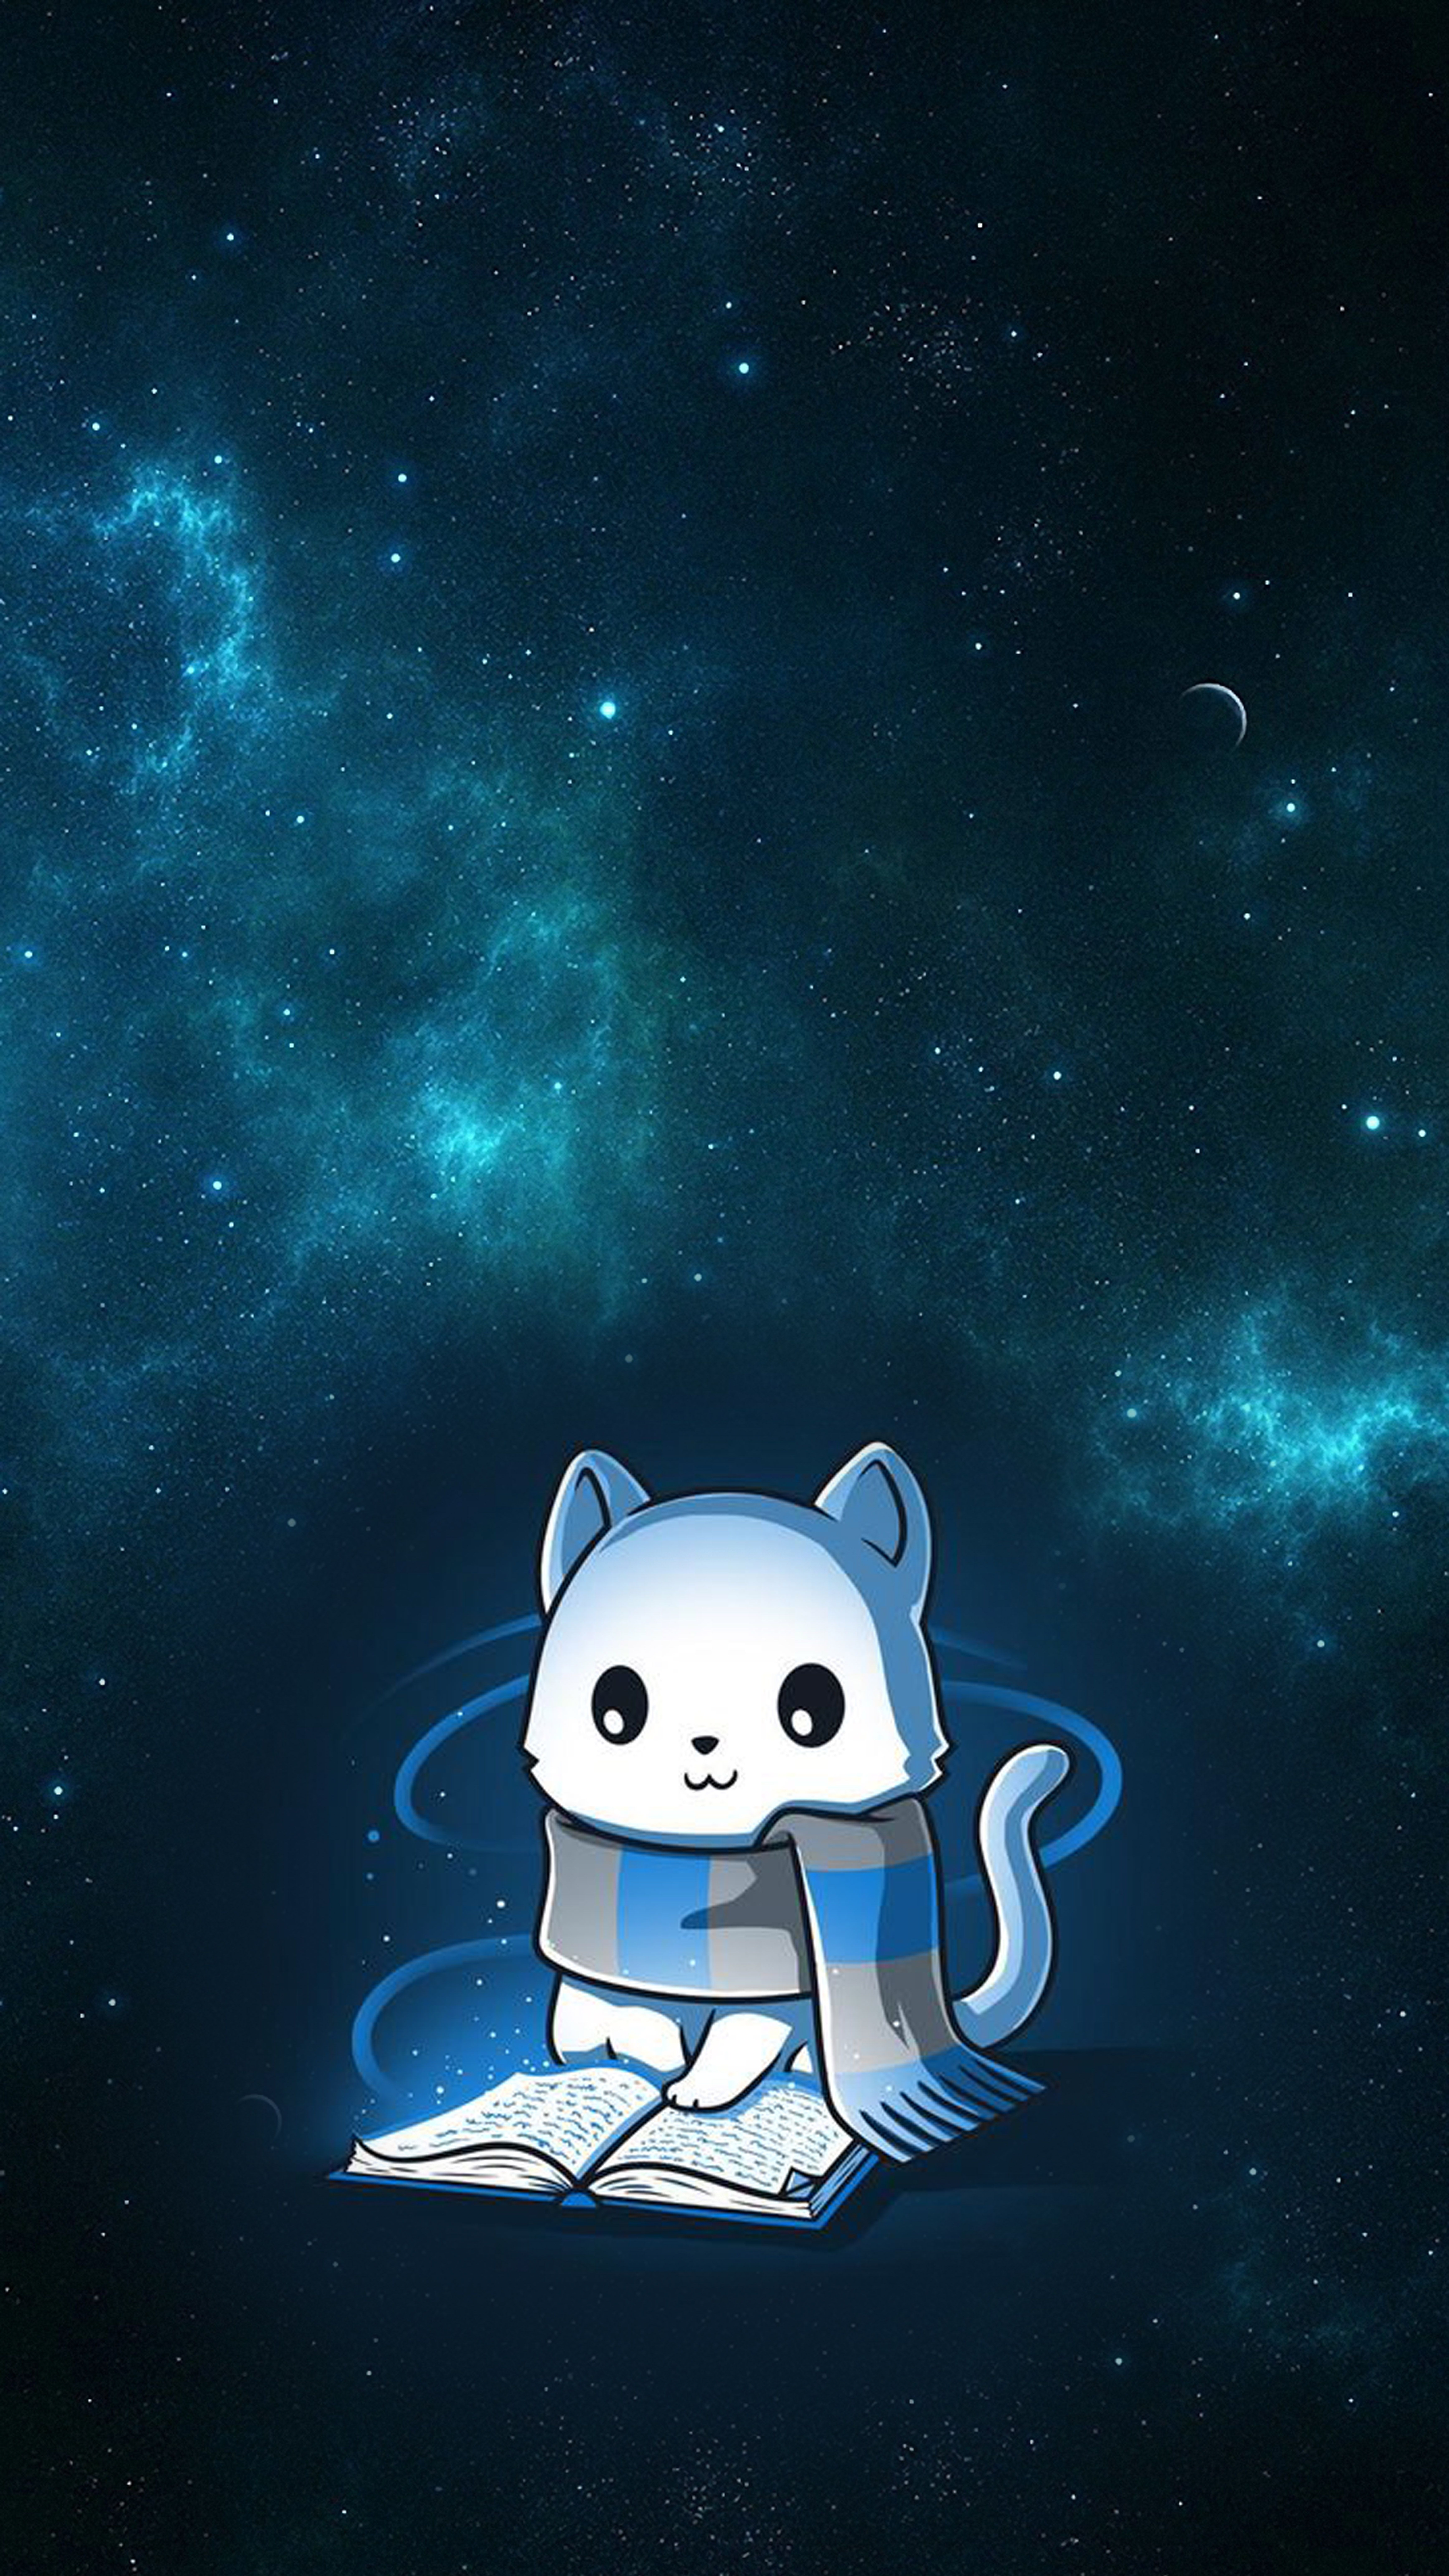 Ravenclaw cat space iphone background or wallpaper